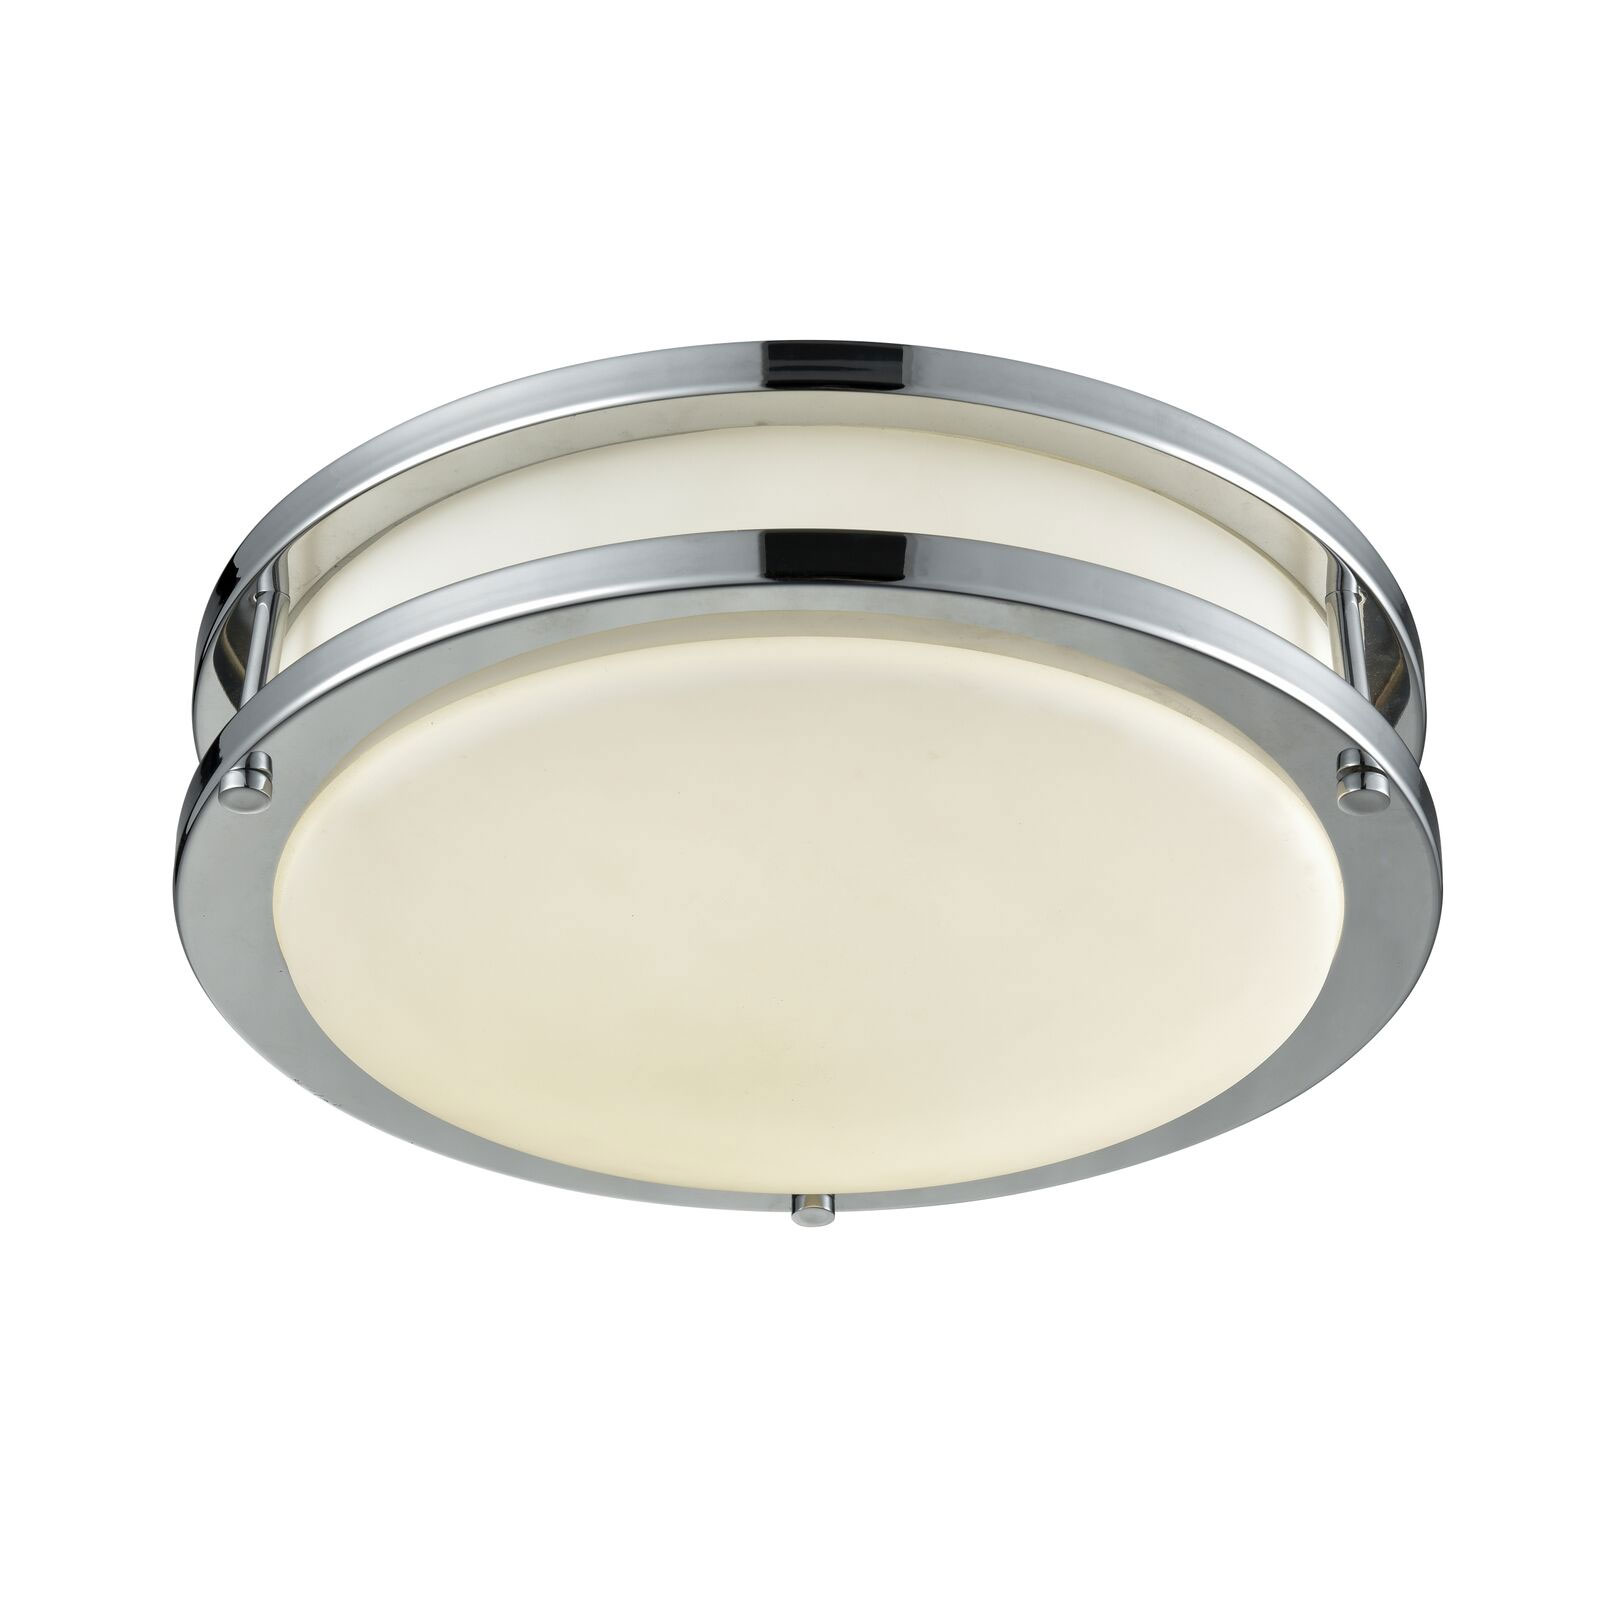 Flanders flush mount ceiling wall light by dvi lighting dvp25032ch